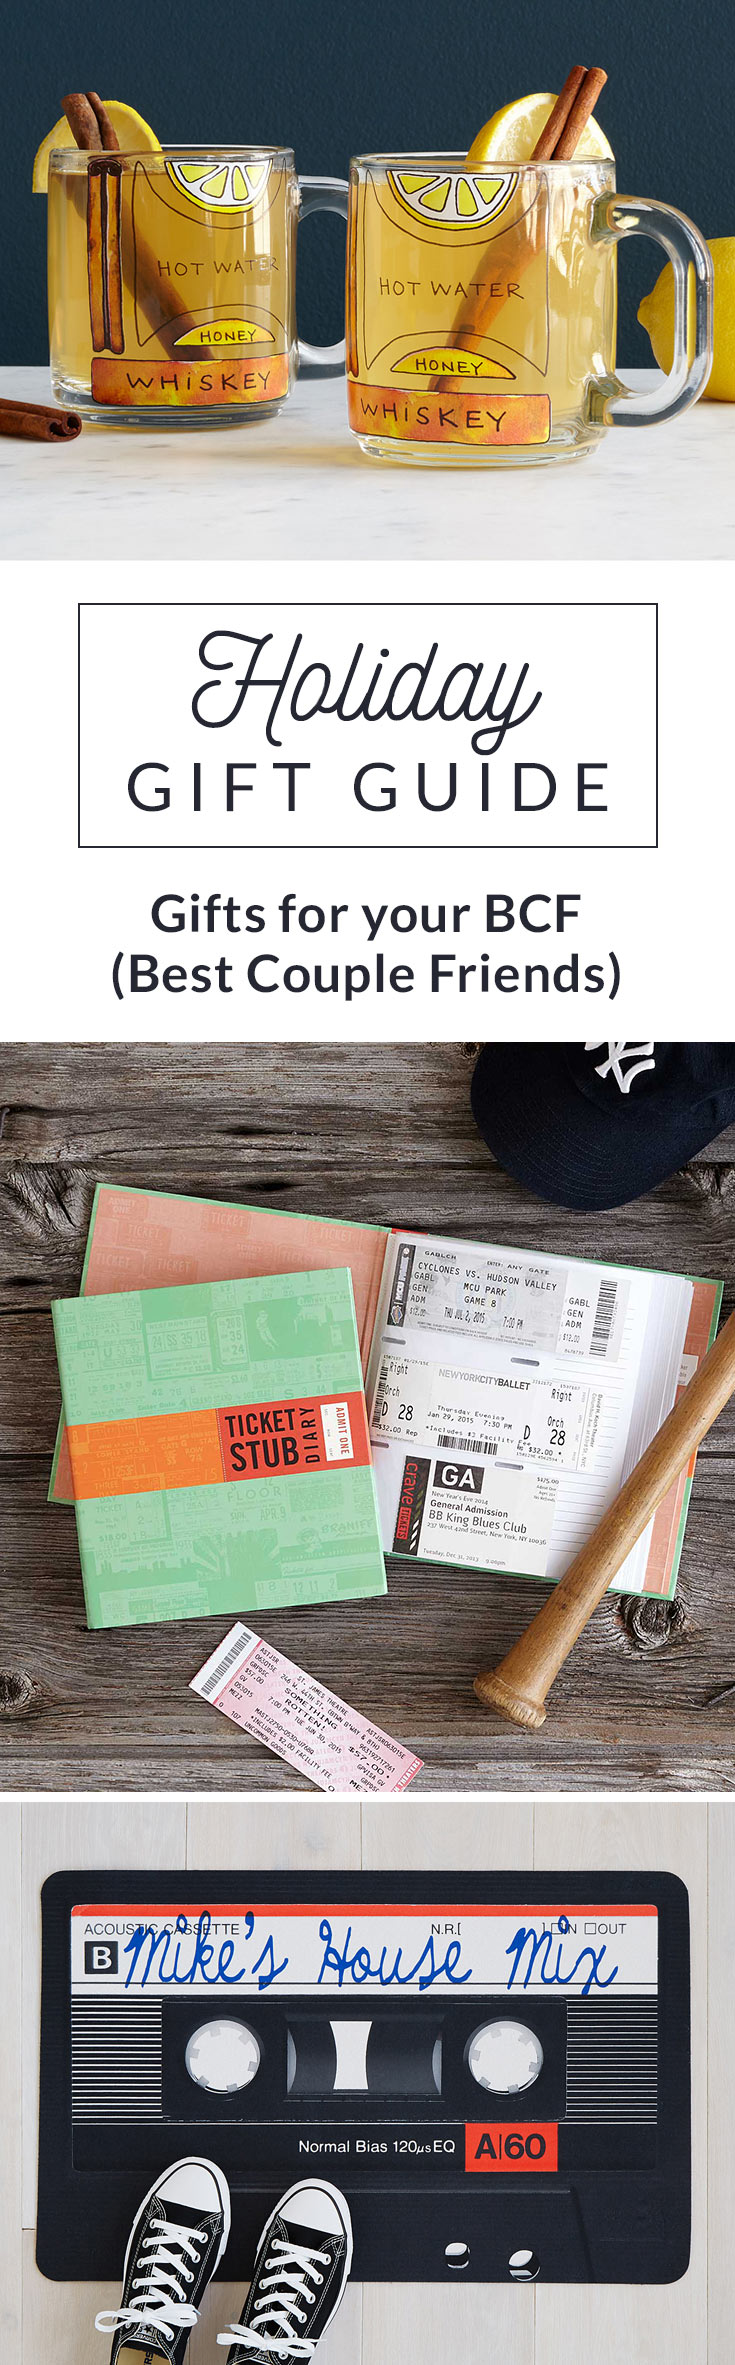 Show them you care with these great gifts for couples.